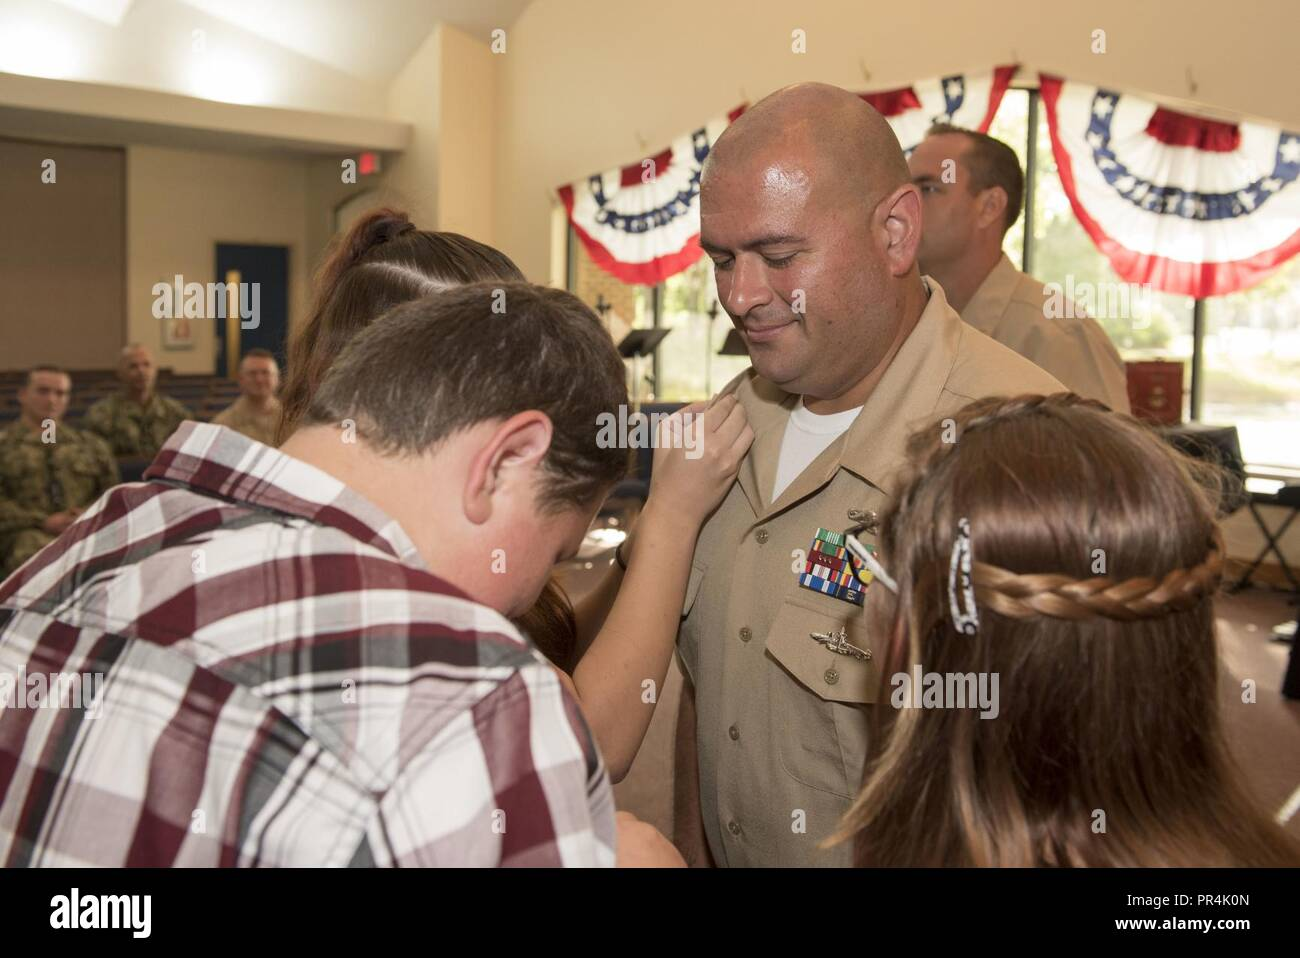 KINGS BAY, Georgia (Sept. 14, 2018) Chief Culinary Specialist (Submarines) John Nordman is pinned with his anchors by his family during Naval Submarine Base Kings Bay's 2018 chief petty officer pinning ceremony.  The base is home to six of the Ohio-class ballistic-missile submarines that make up the most survivable leg of the nuclear missile triad. - Stock Image